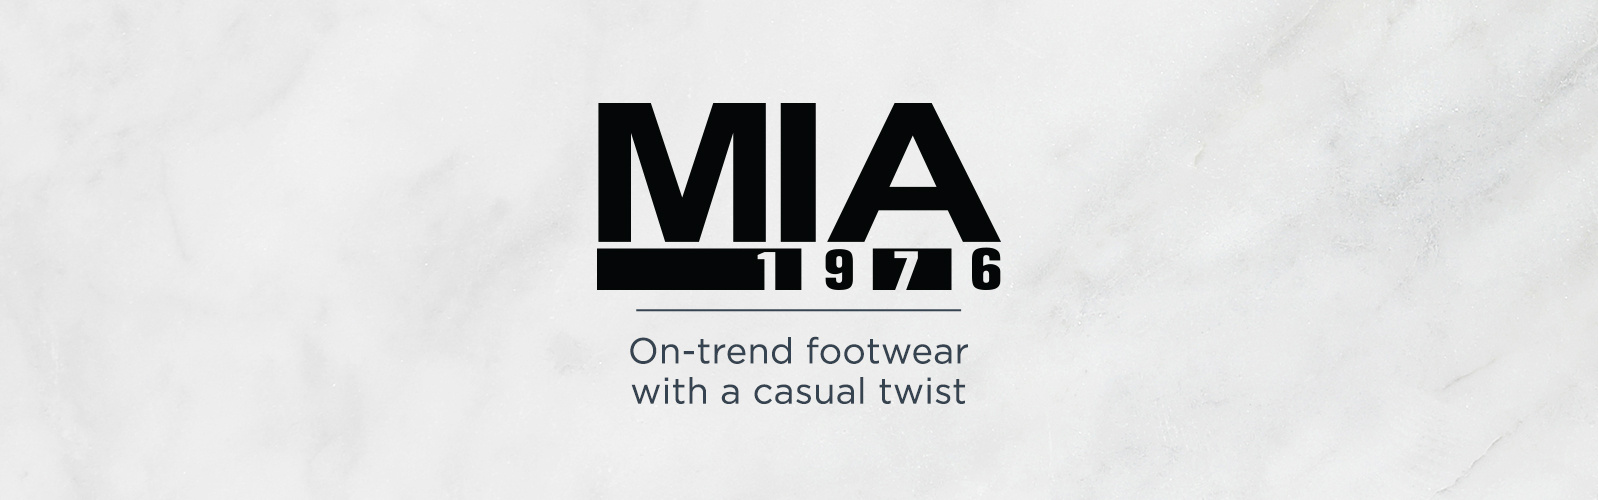 Mia - On-trend footwear with a casual twist